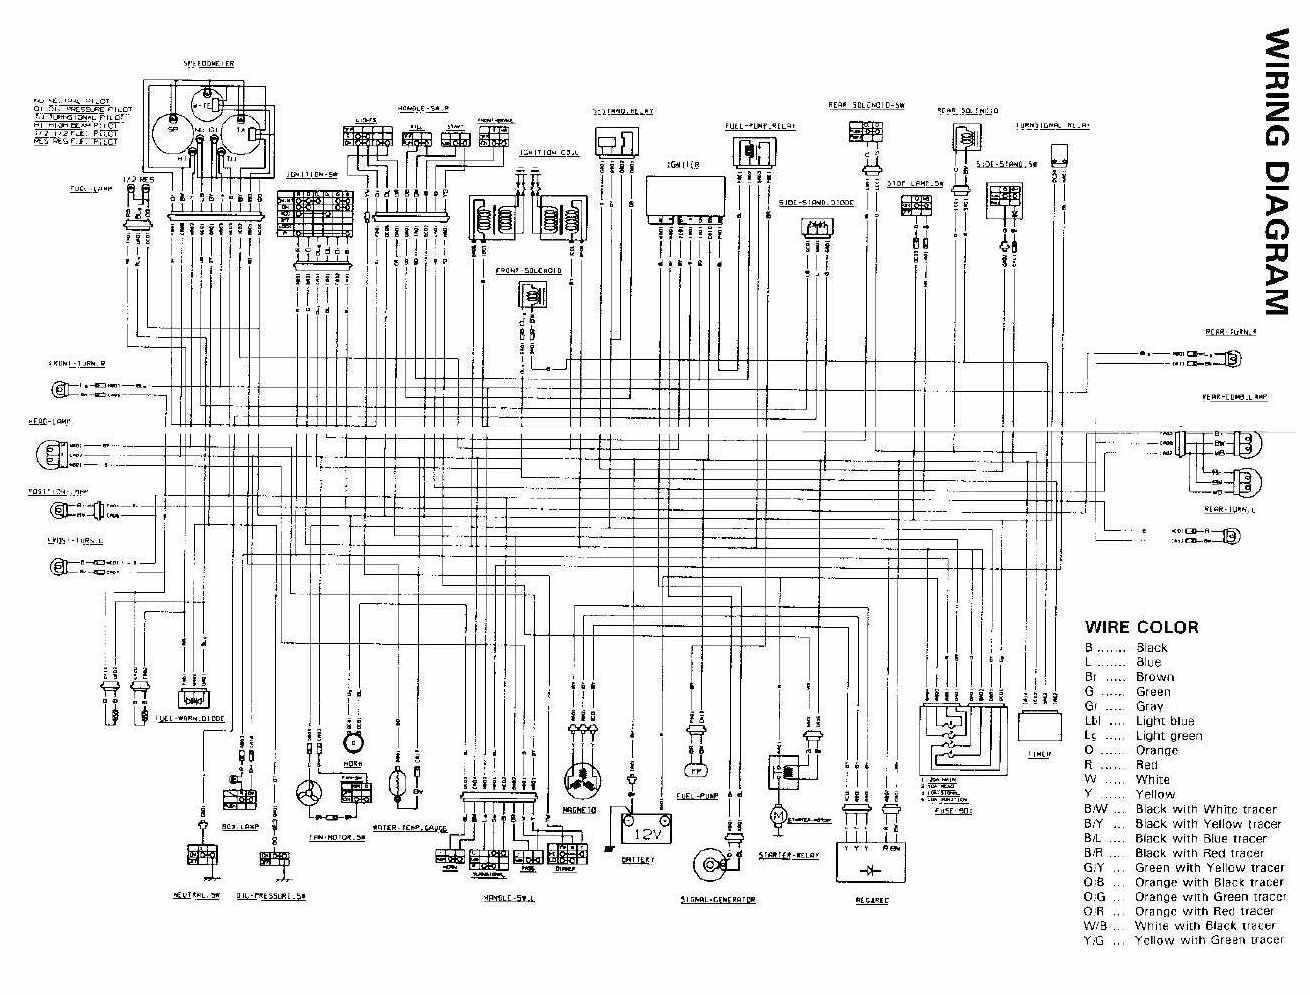 Wiring Diagrams Suzuki Motorcycle : Suzuki ts wiring diagram gs